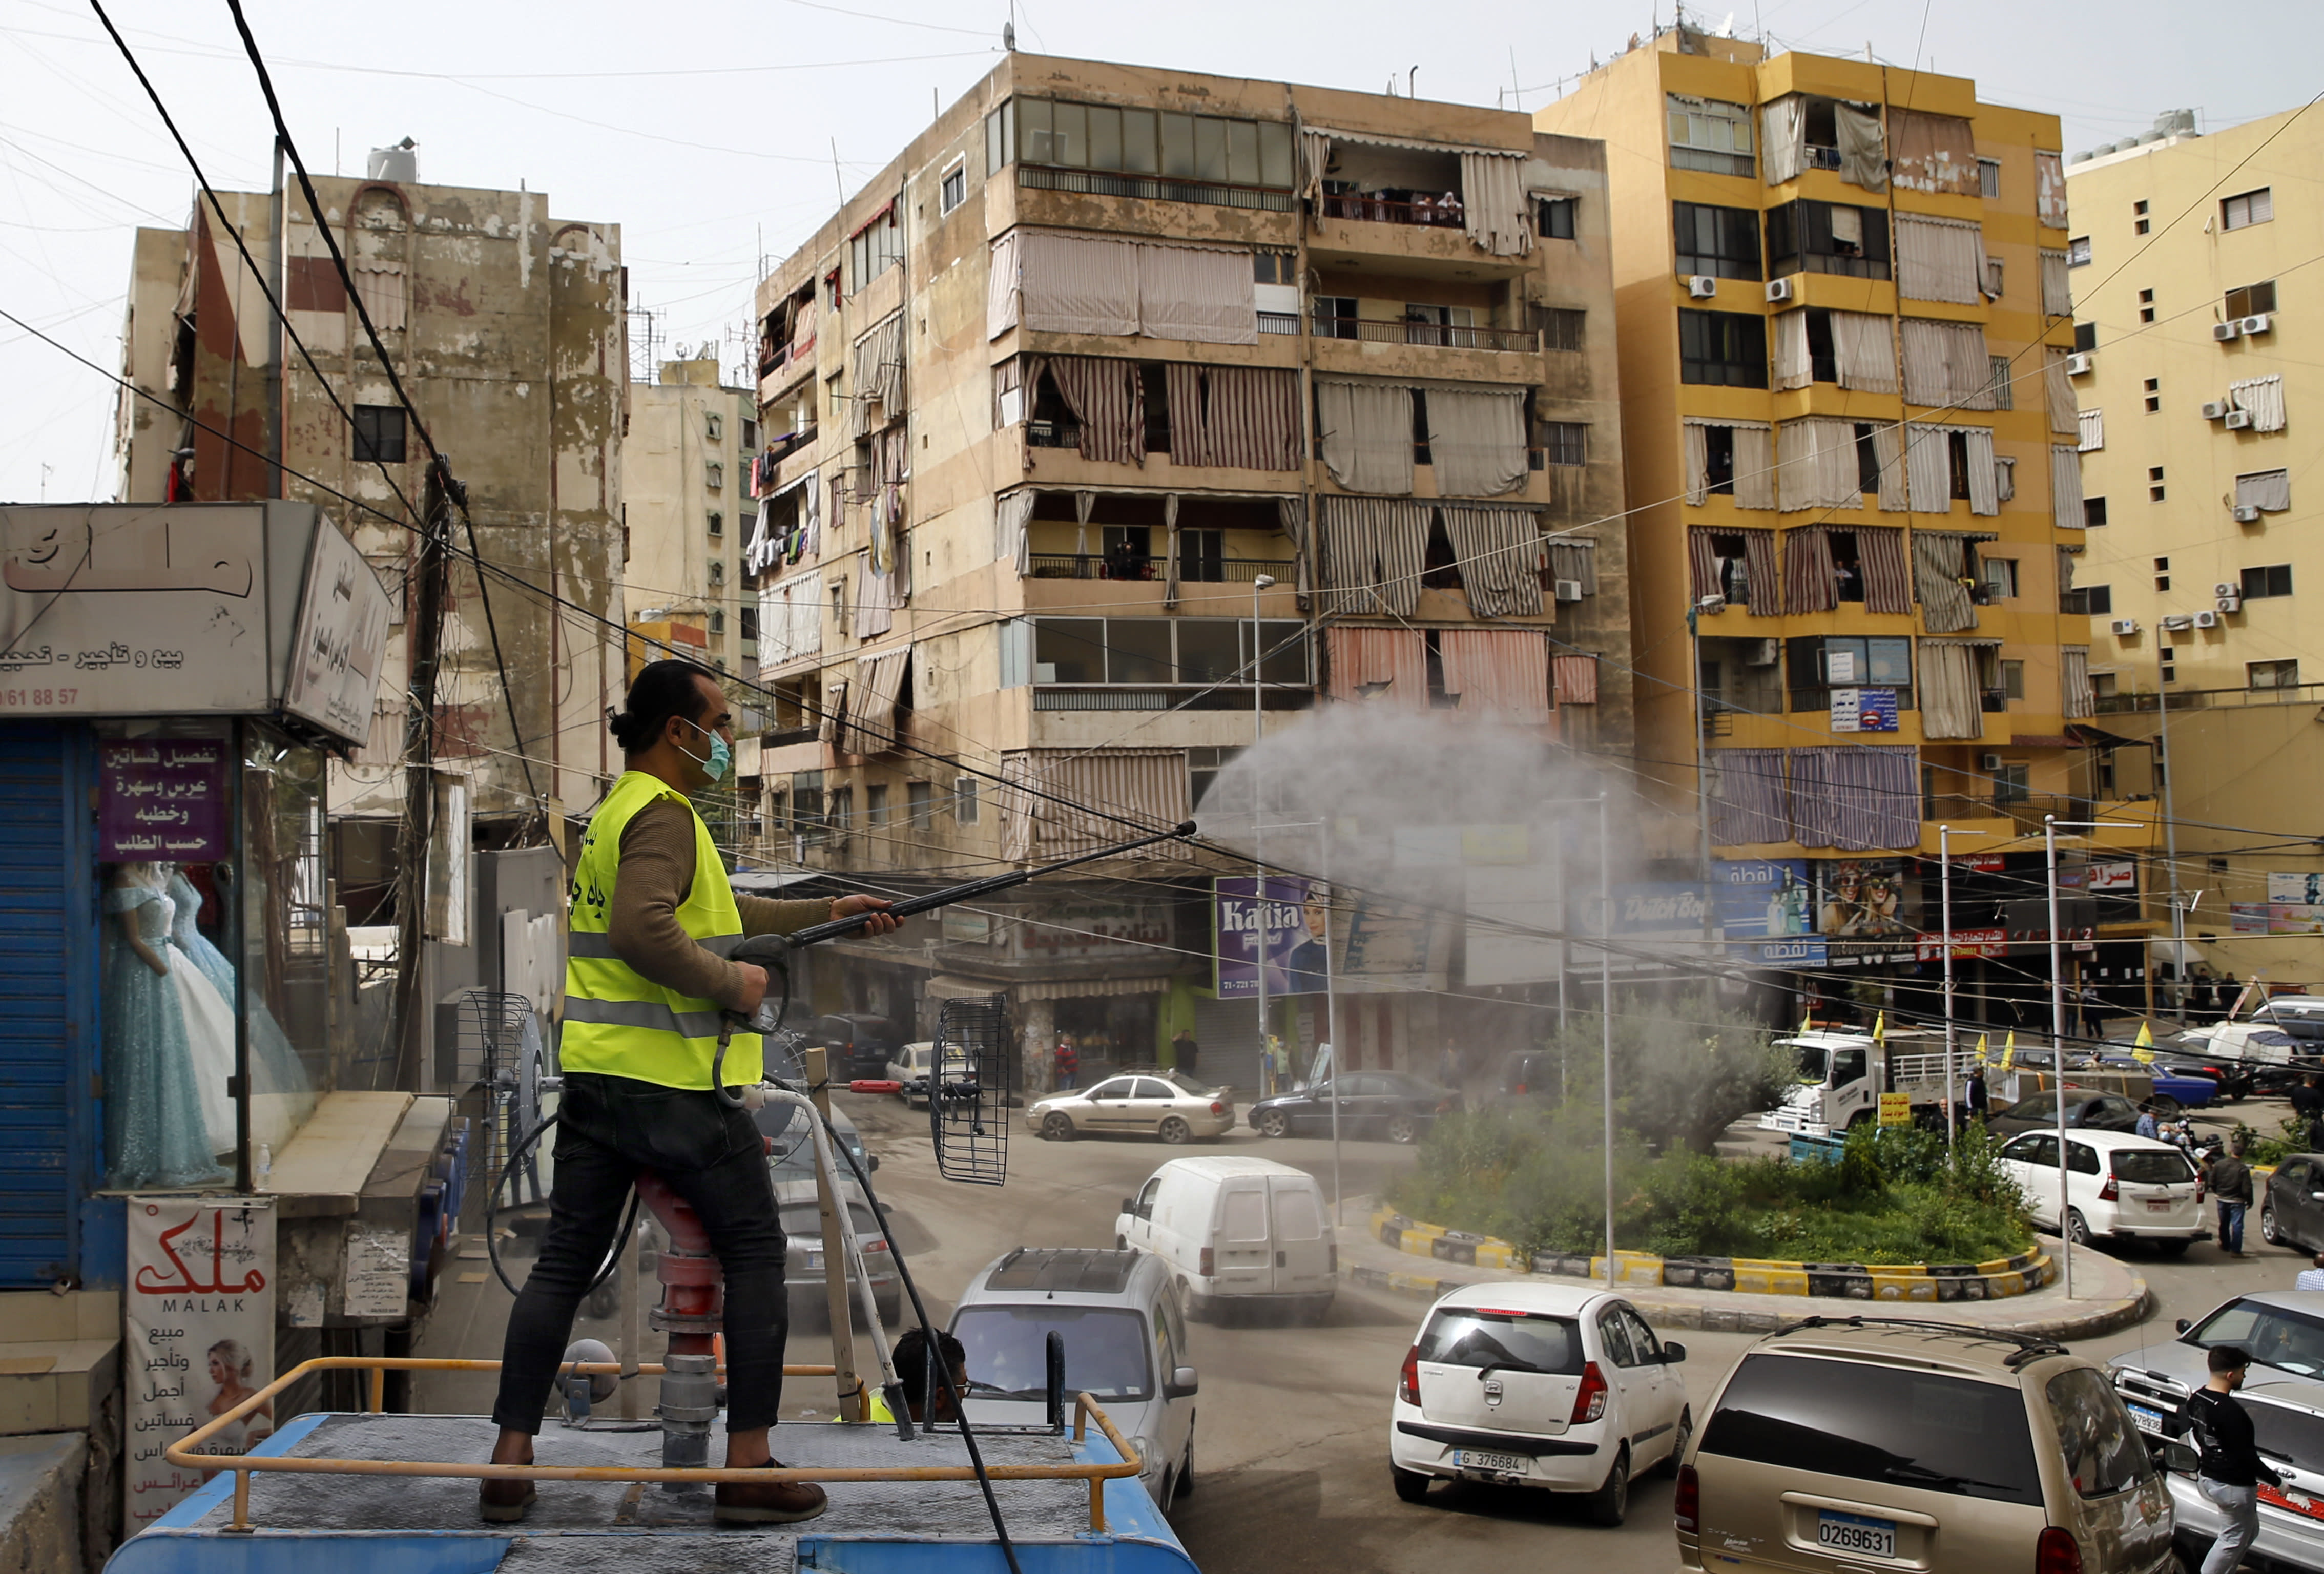 A municipal worker sprays disinfectant as a precaution against the coronavirus outbreak, in the southern suburb of Beirut, Lebanon, Friday, March 27, 2020. The virus causes mild or moderate symptoms for most people, but for some, especially older adults and people with existing health problems, it can cause more severe illness or death. (AP Photo/Bilal Hussein)